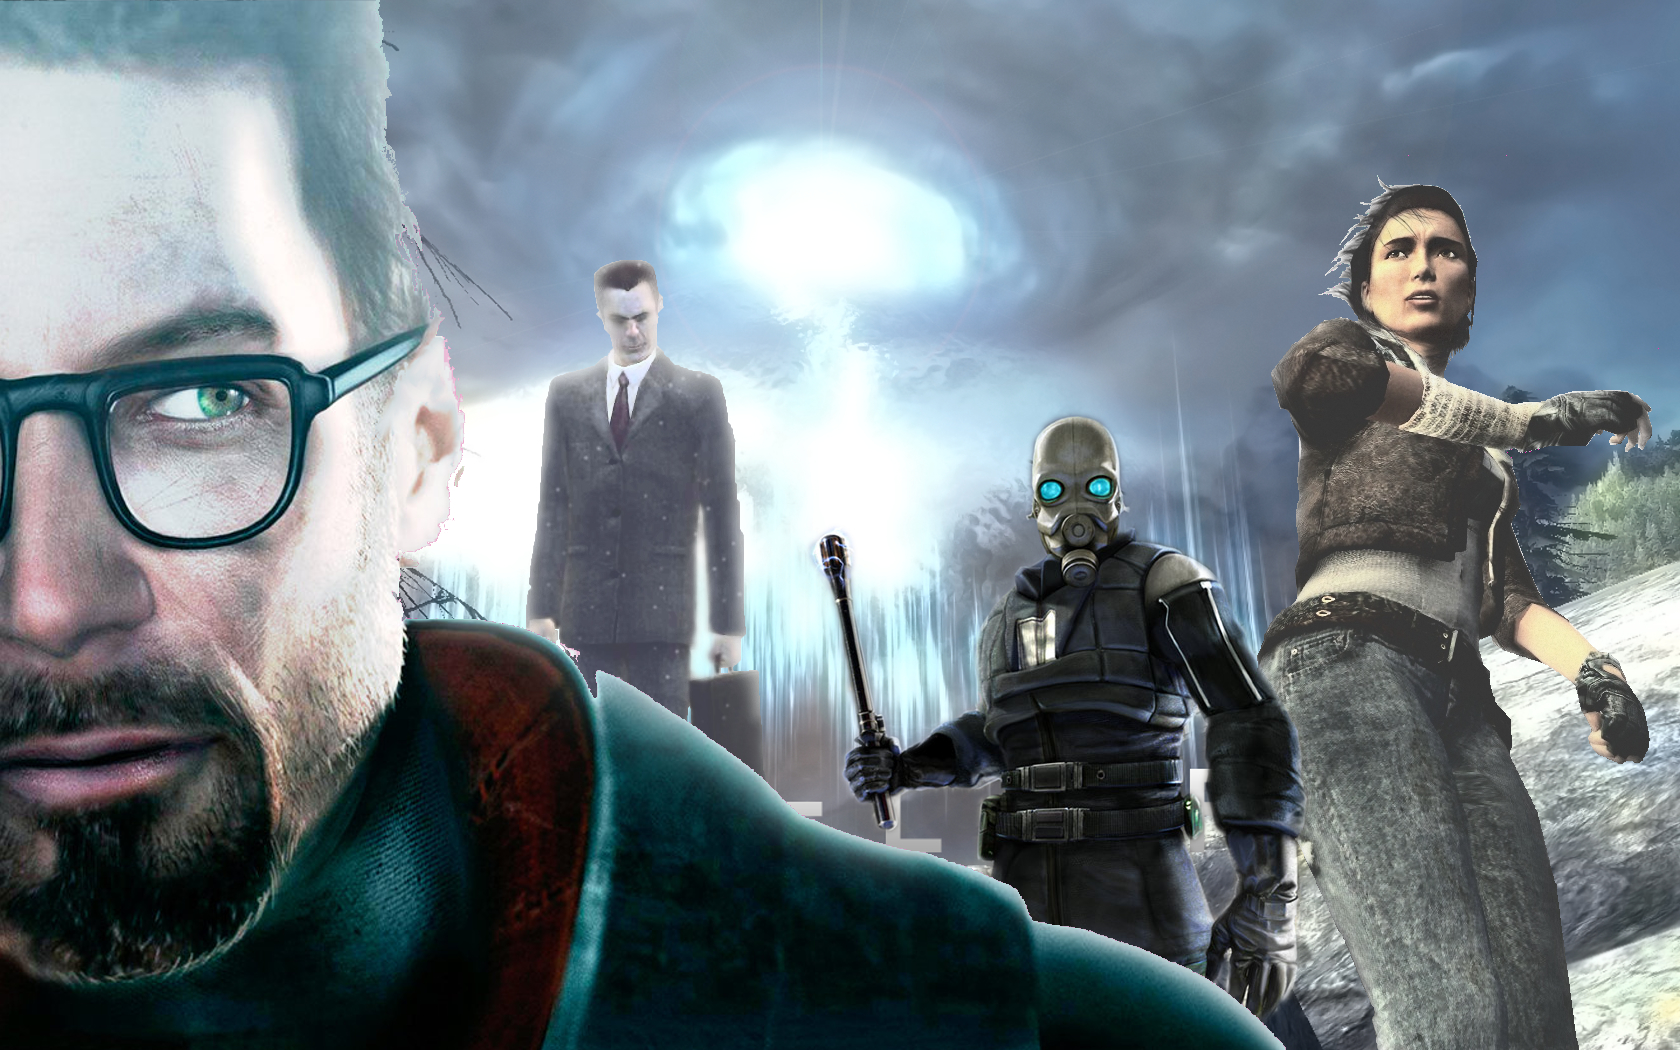 Free Download Half Life 2 Episode 2 Wallpaper Which Is Under The